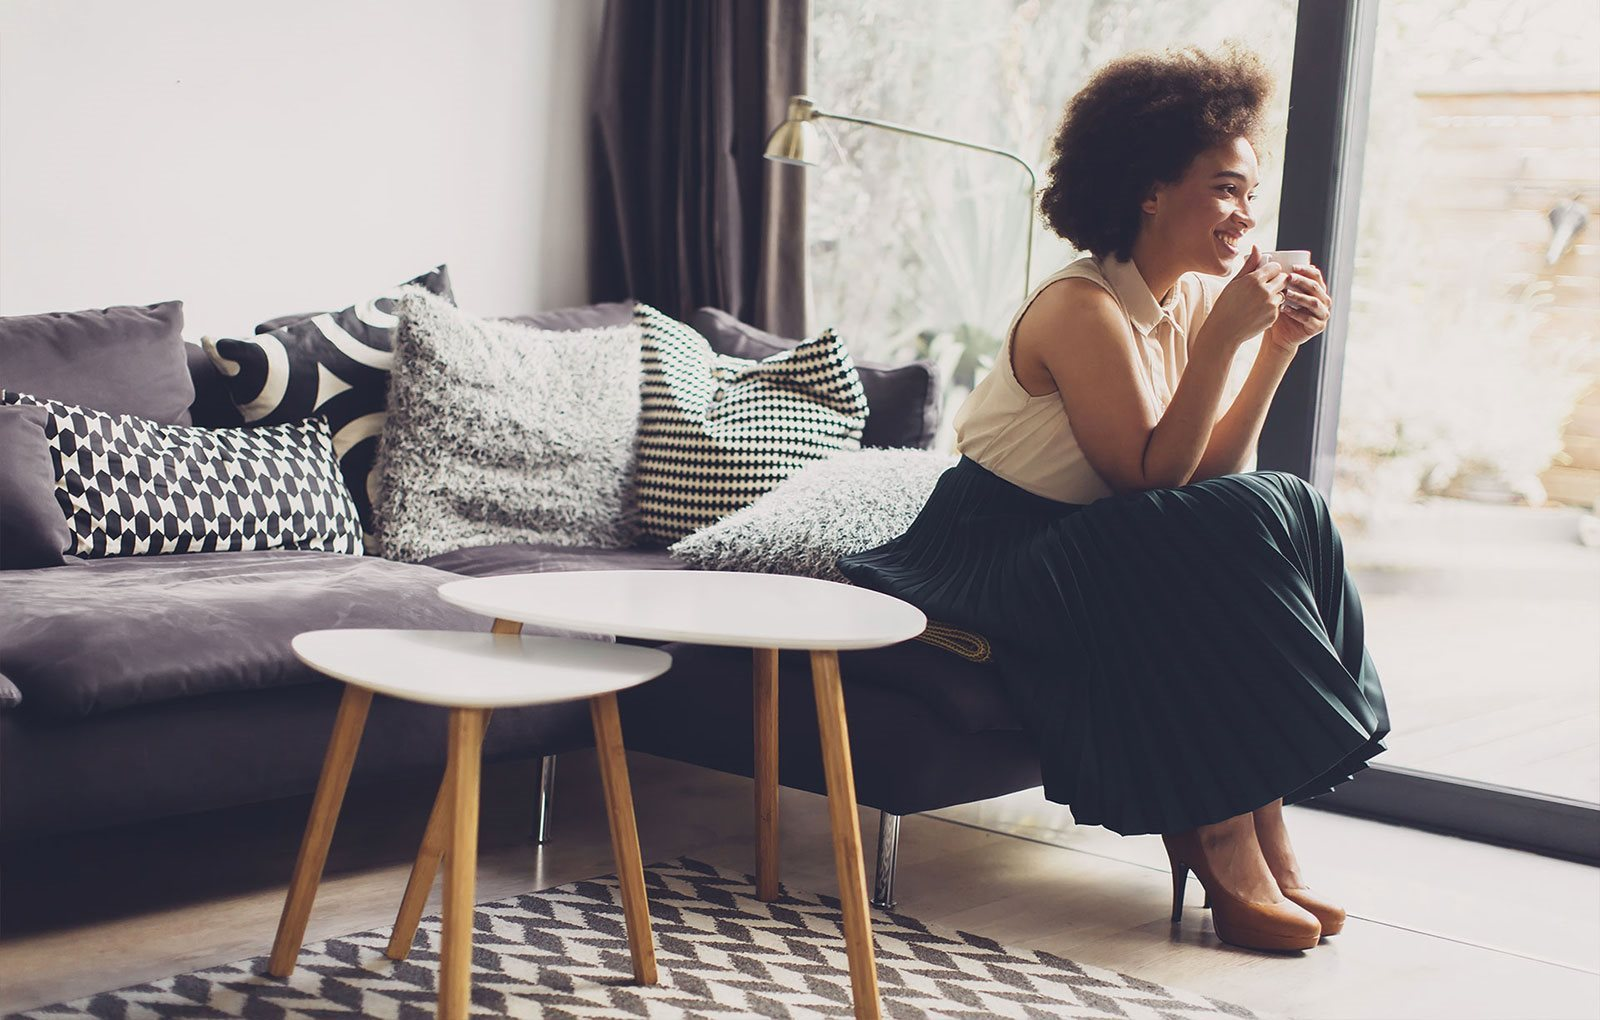 stock image- woman drinking coffee in living room